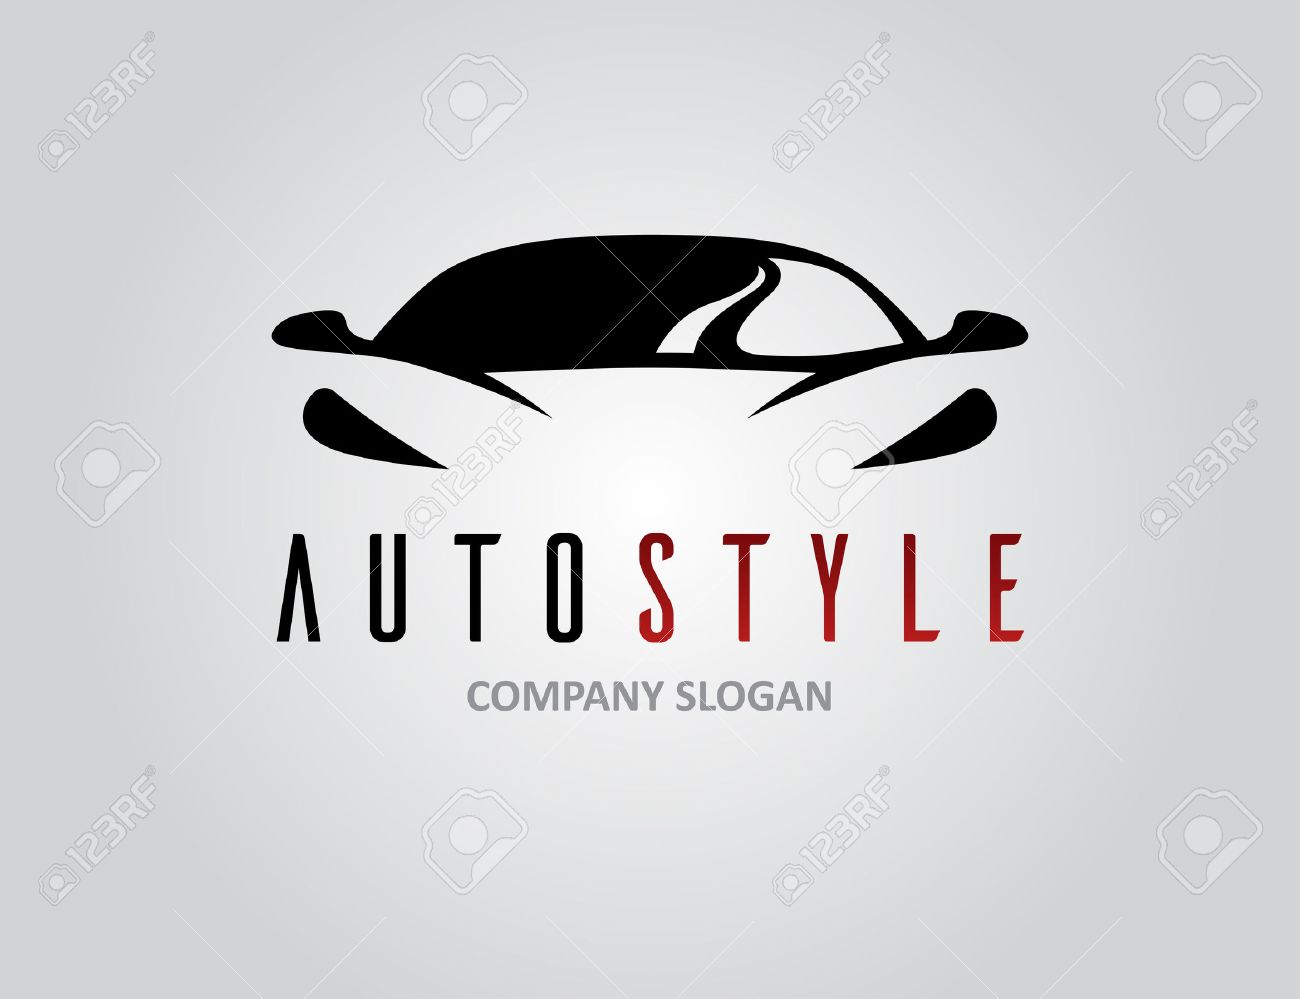 Auto style car icon design with concept sports vehicle symbol silhouette on light grey background. Vector illustration. - 71144163